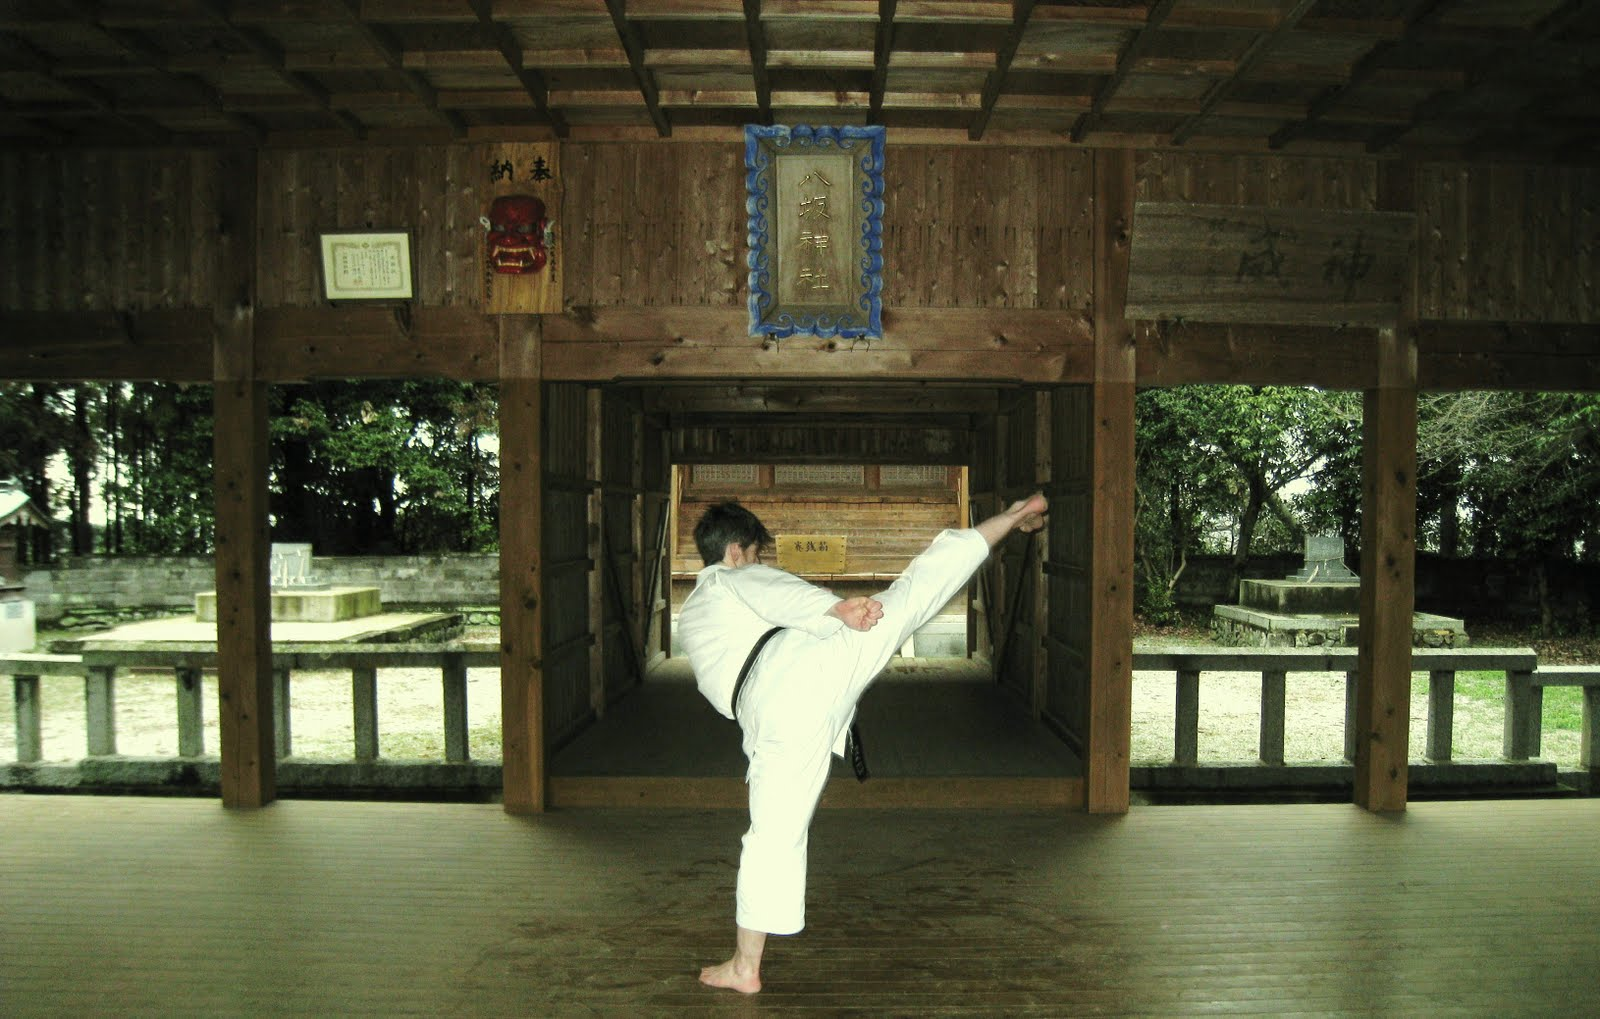 Not to mention the most authentic martial arts experiences possible...